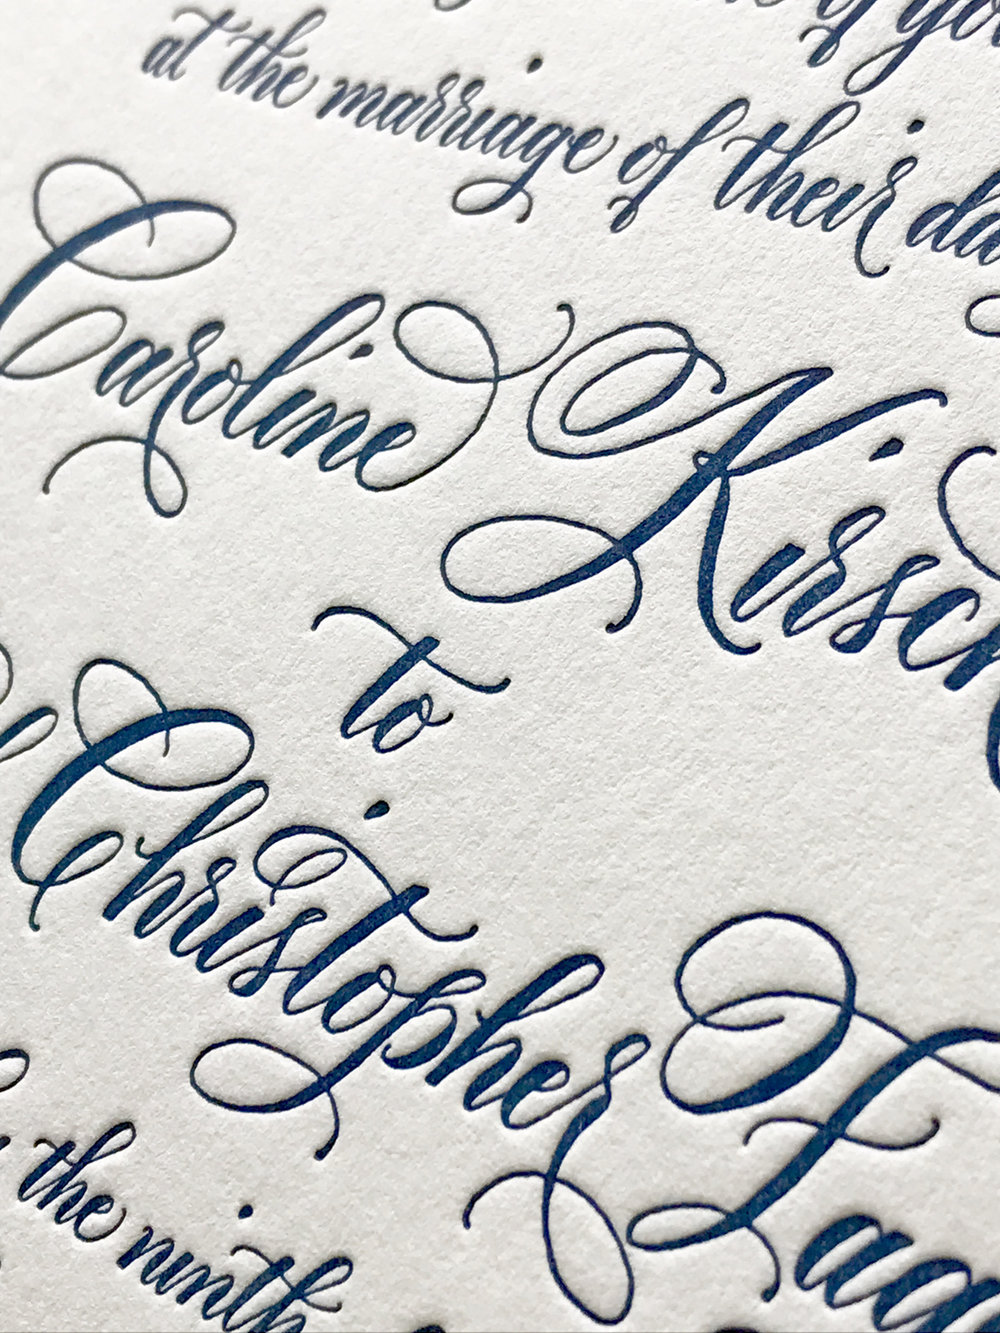 letterpress-calligraphy-bespoke-wedding-invitations-angeliqueink.jpg